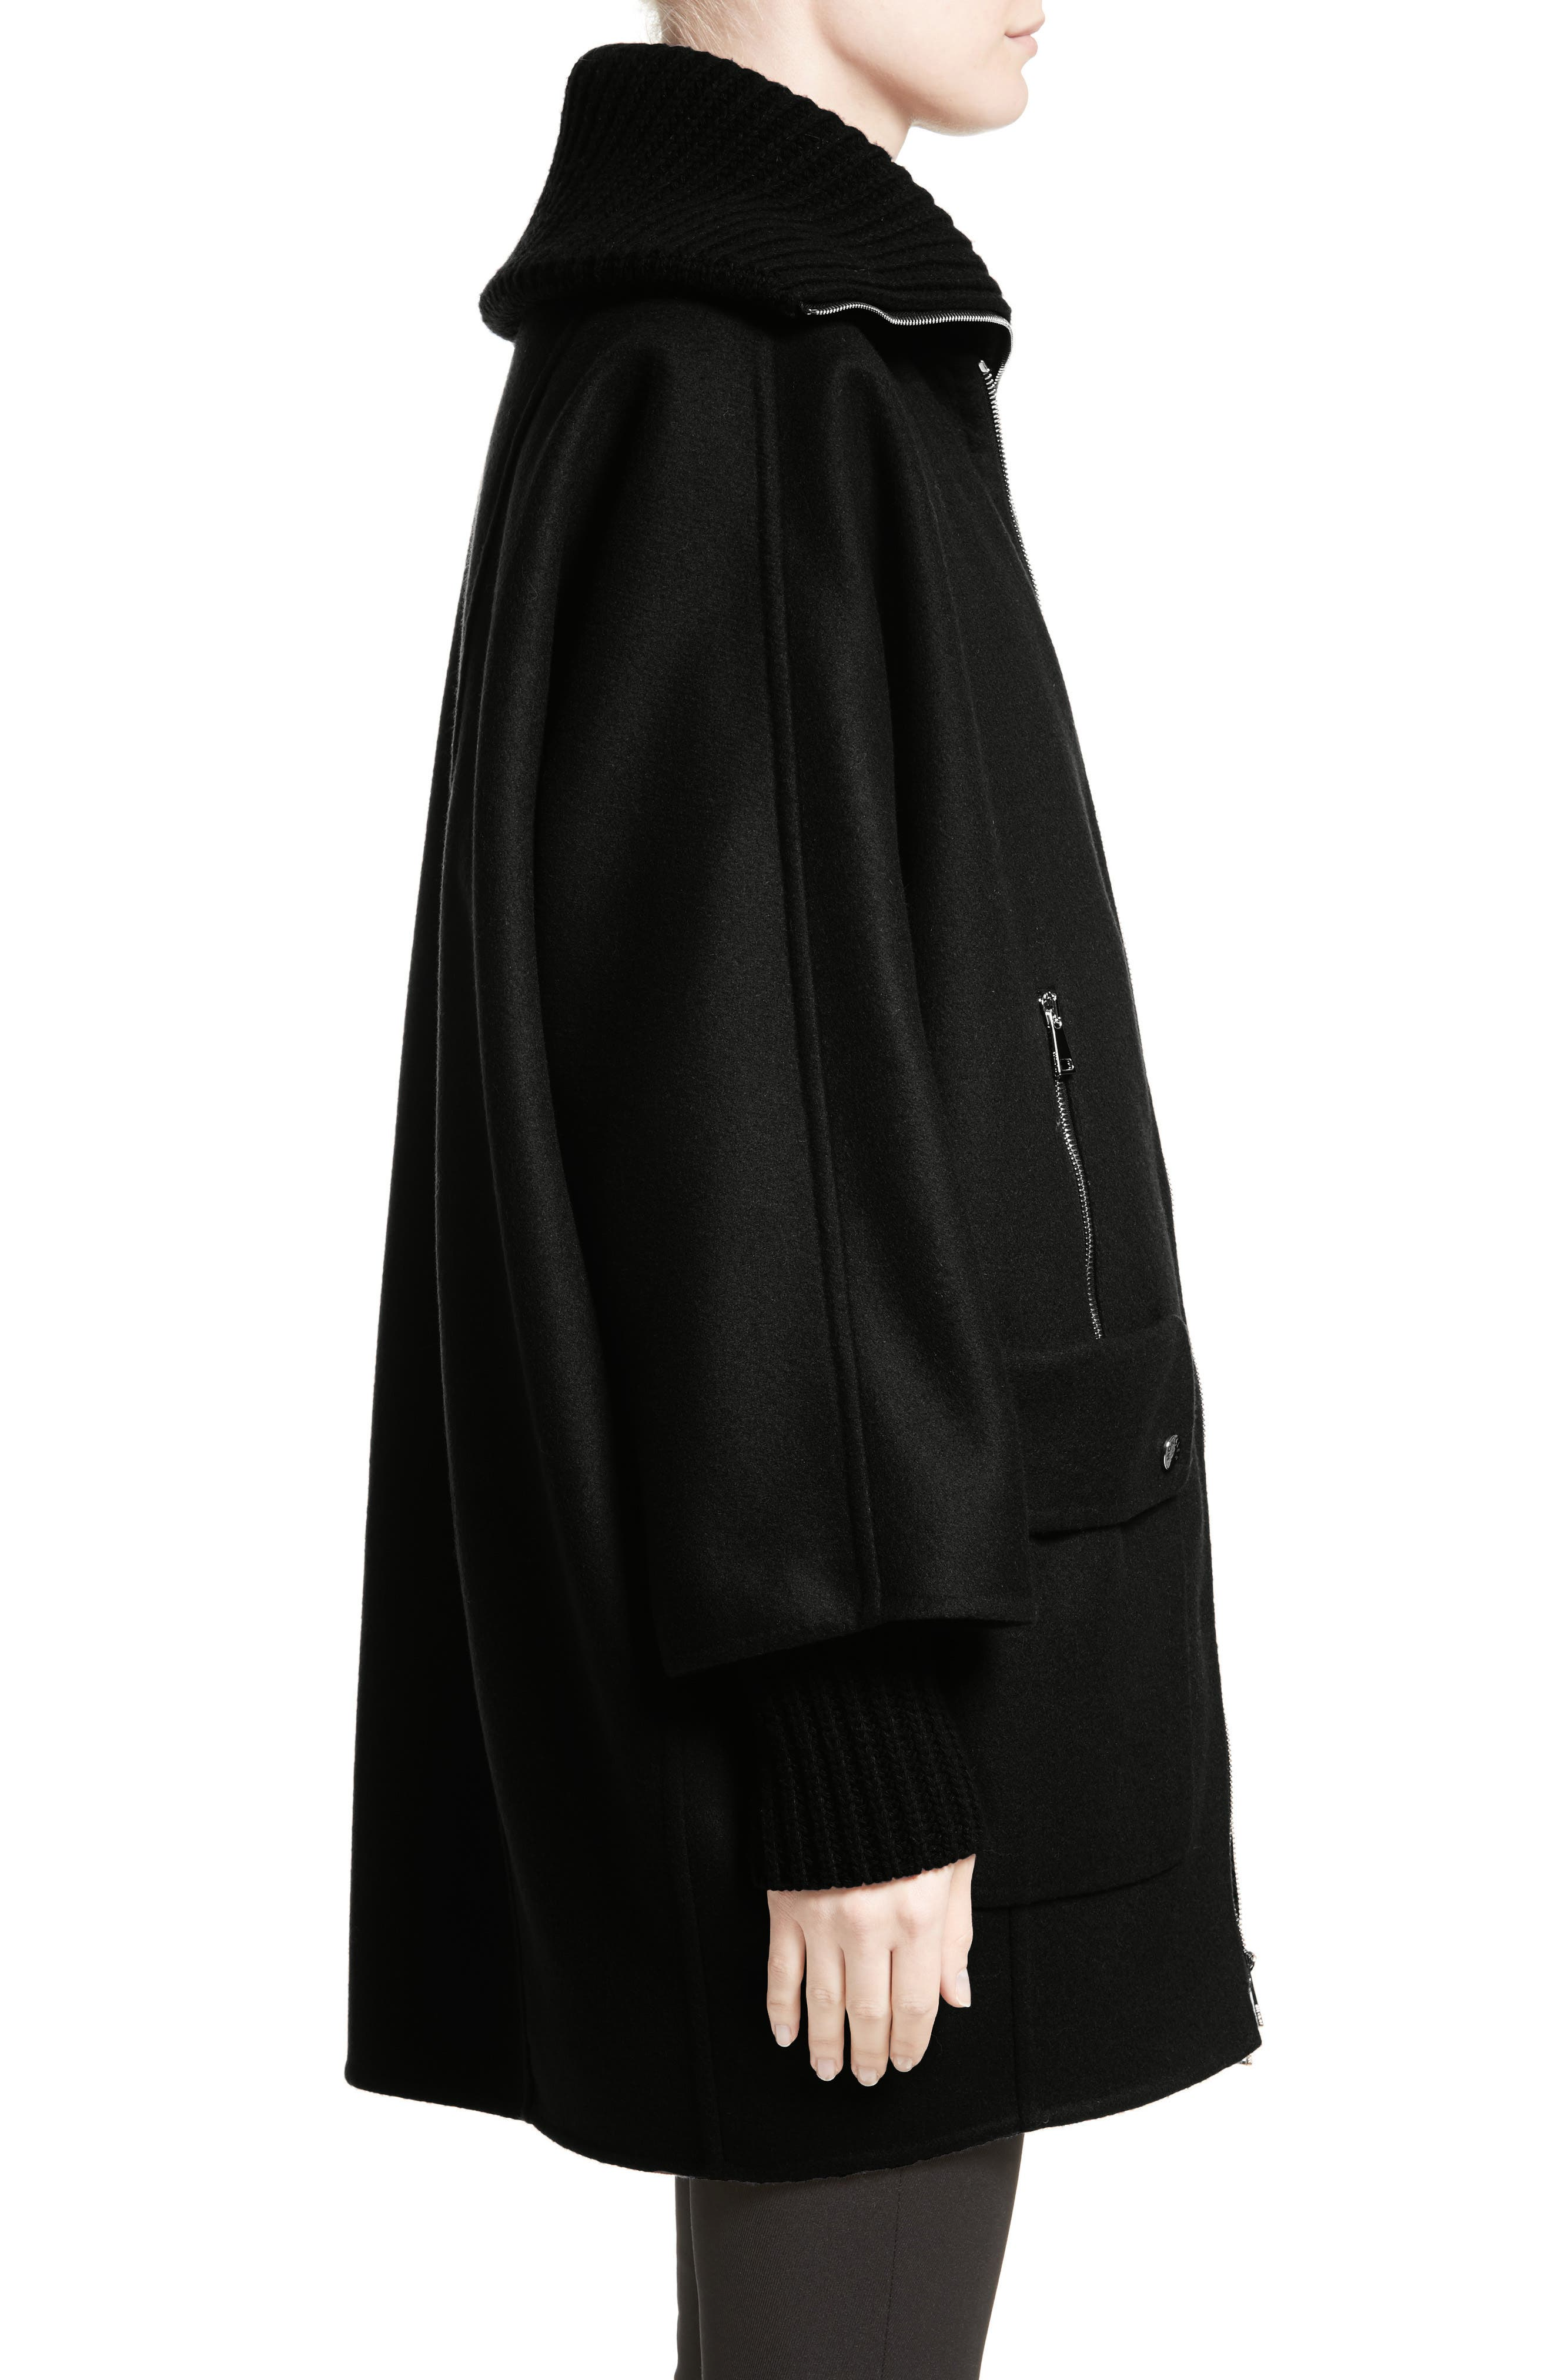 Acanthus Wool & Cashmere Coat with Removable Down Puffer Layer,                             Alternate thumbnail 3, color,                             BLACK